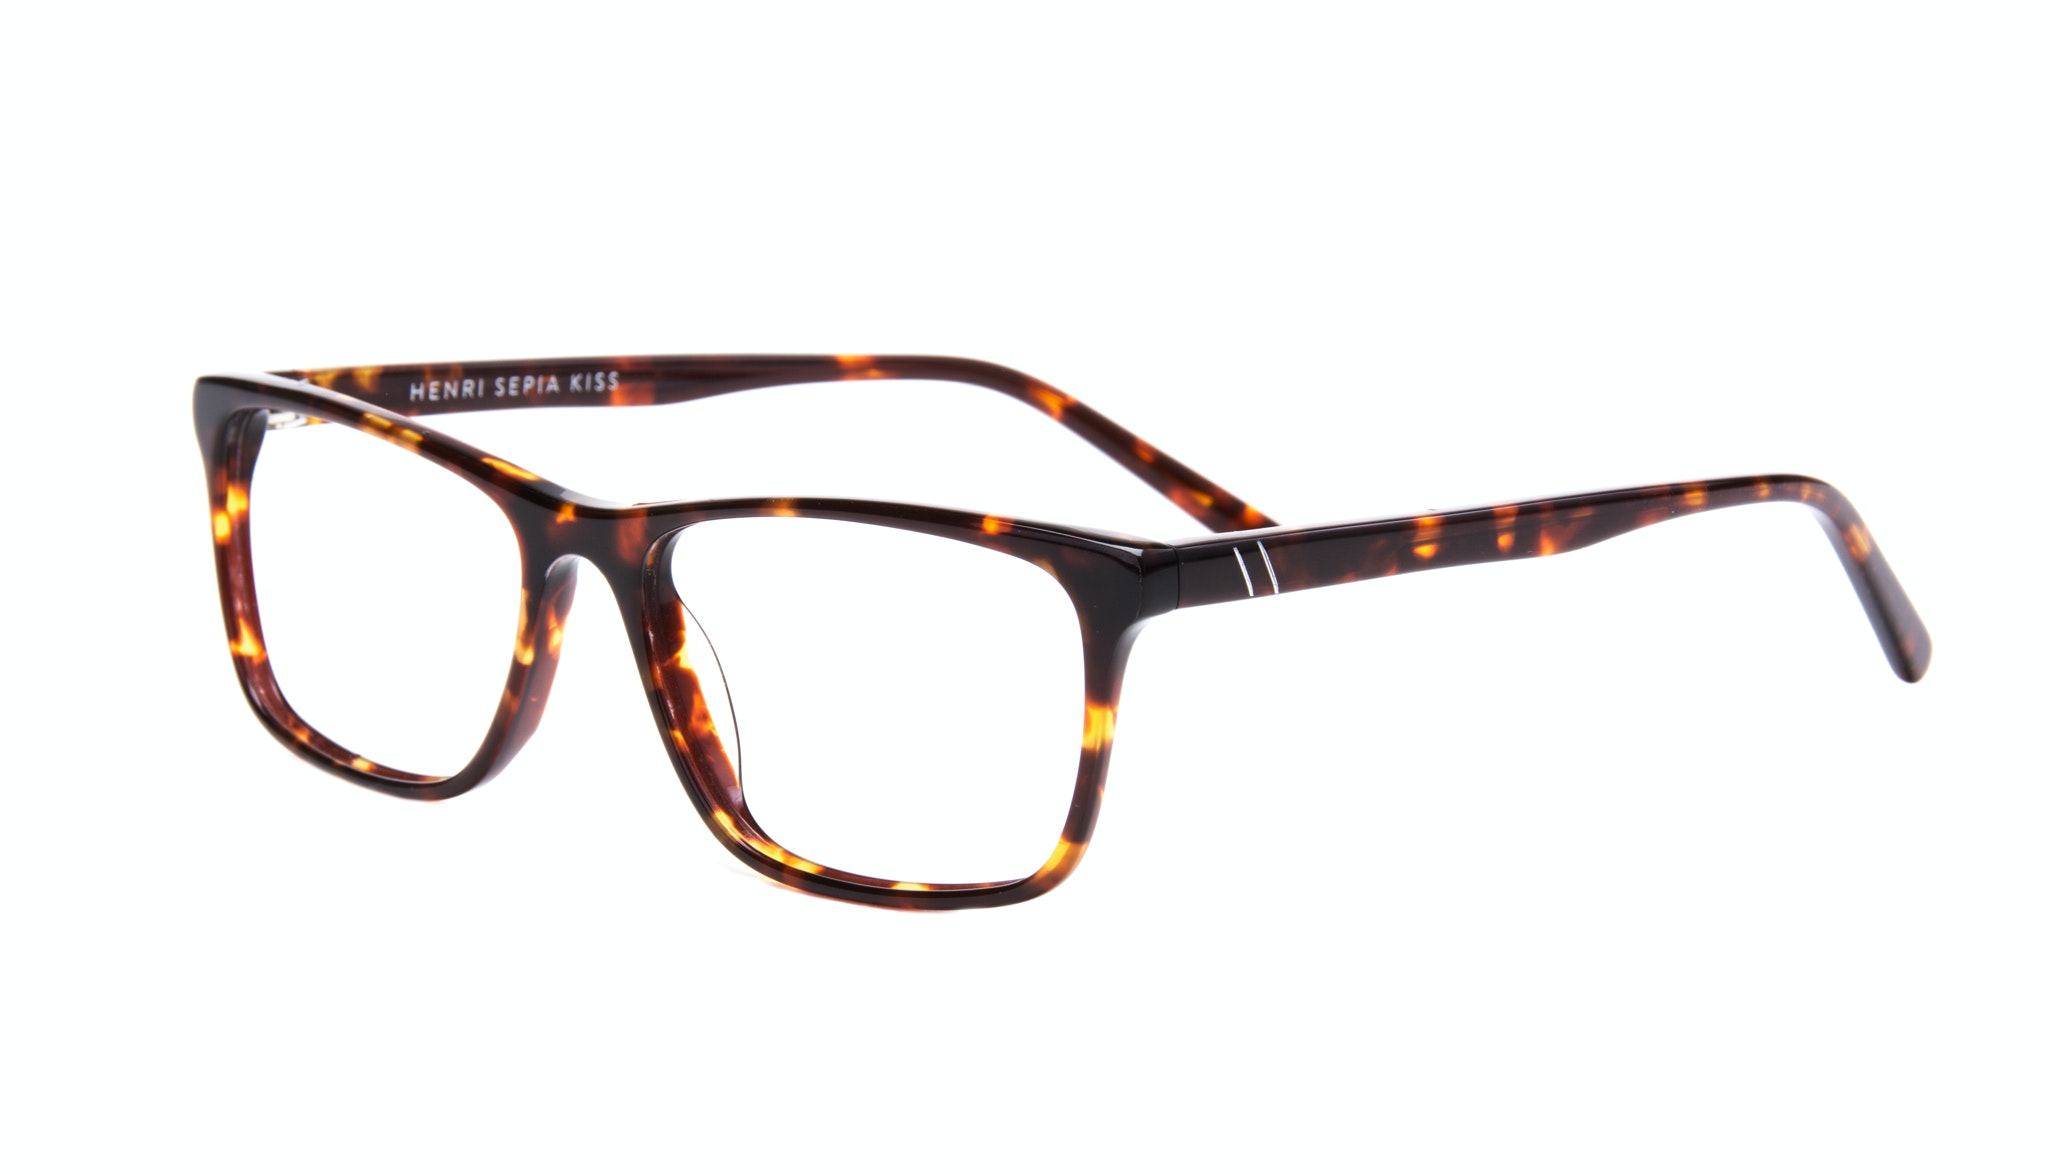 Affordable Fashion Glasses Rectangle Eyeglasses Men Henri Sepia Kiss Tilt